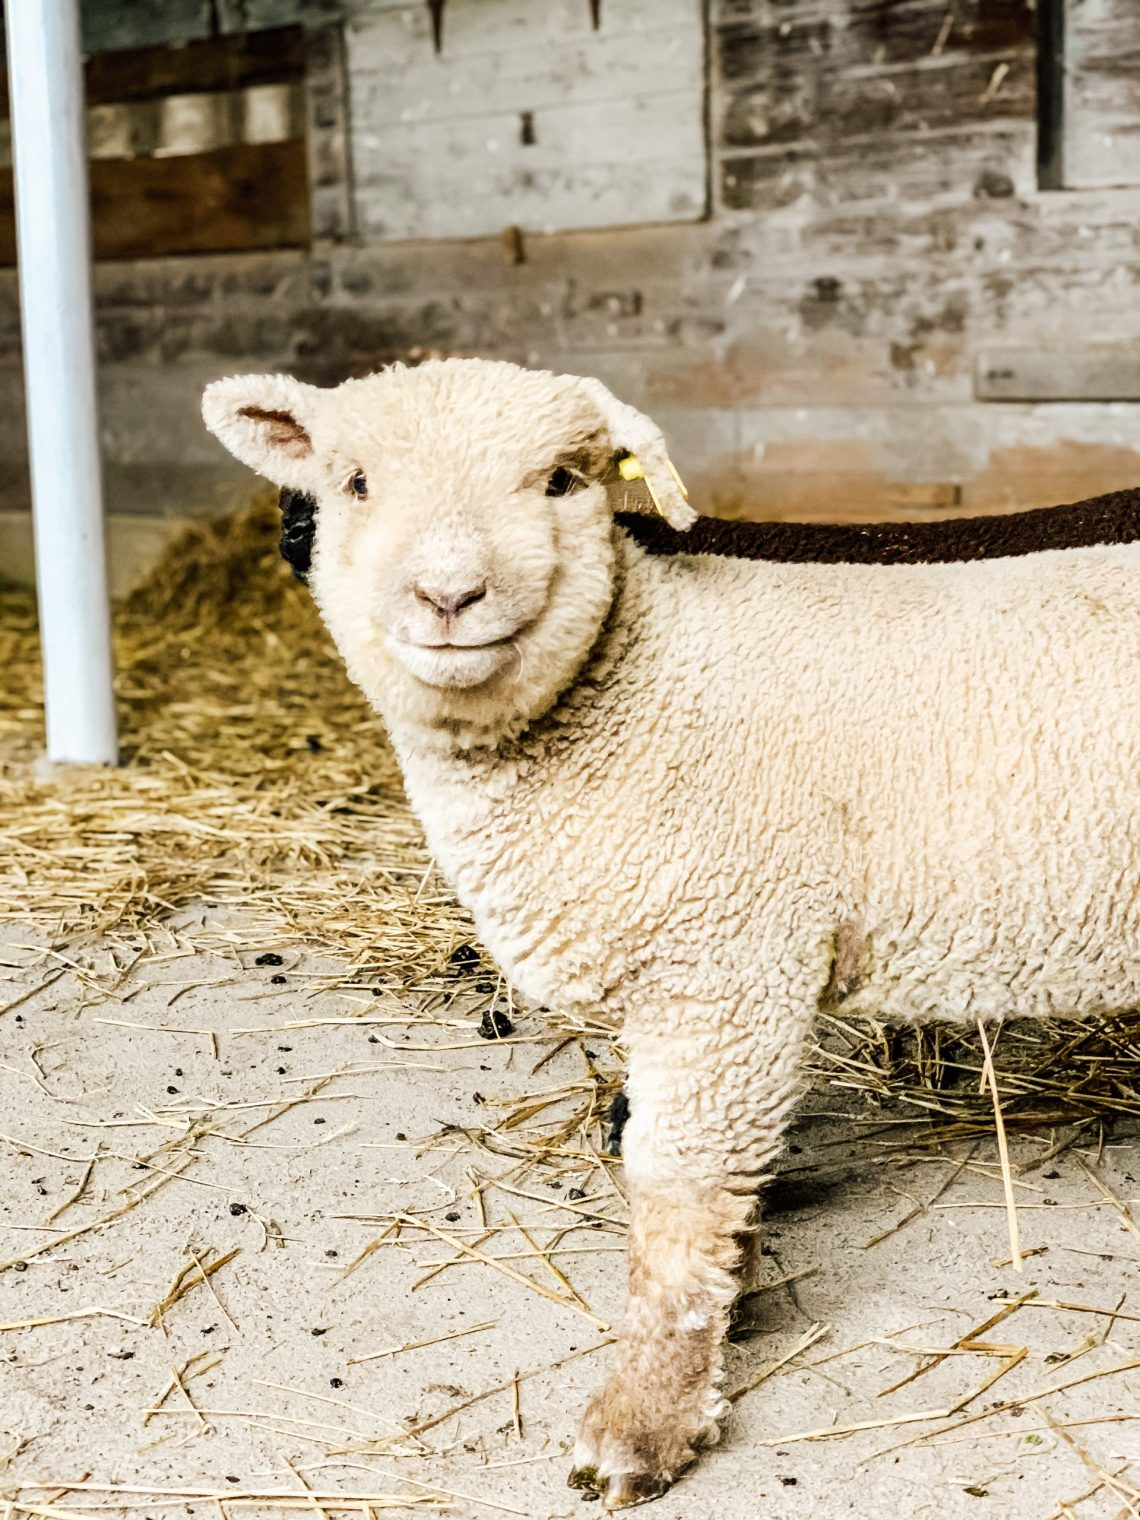 About Our Southdown Babydoll Sheep